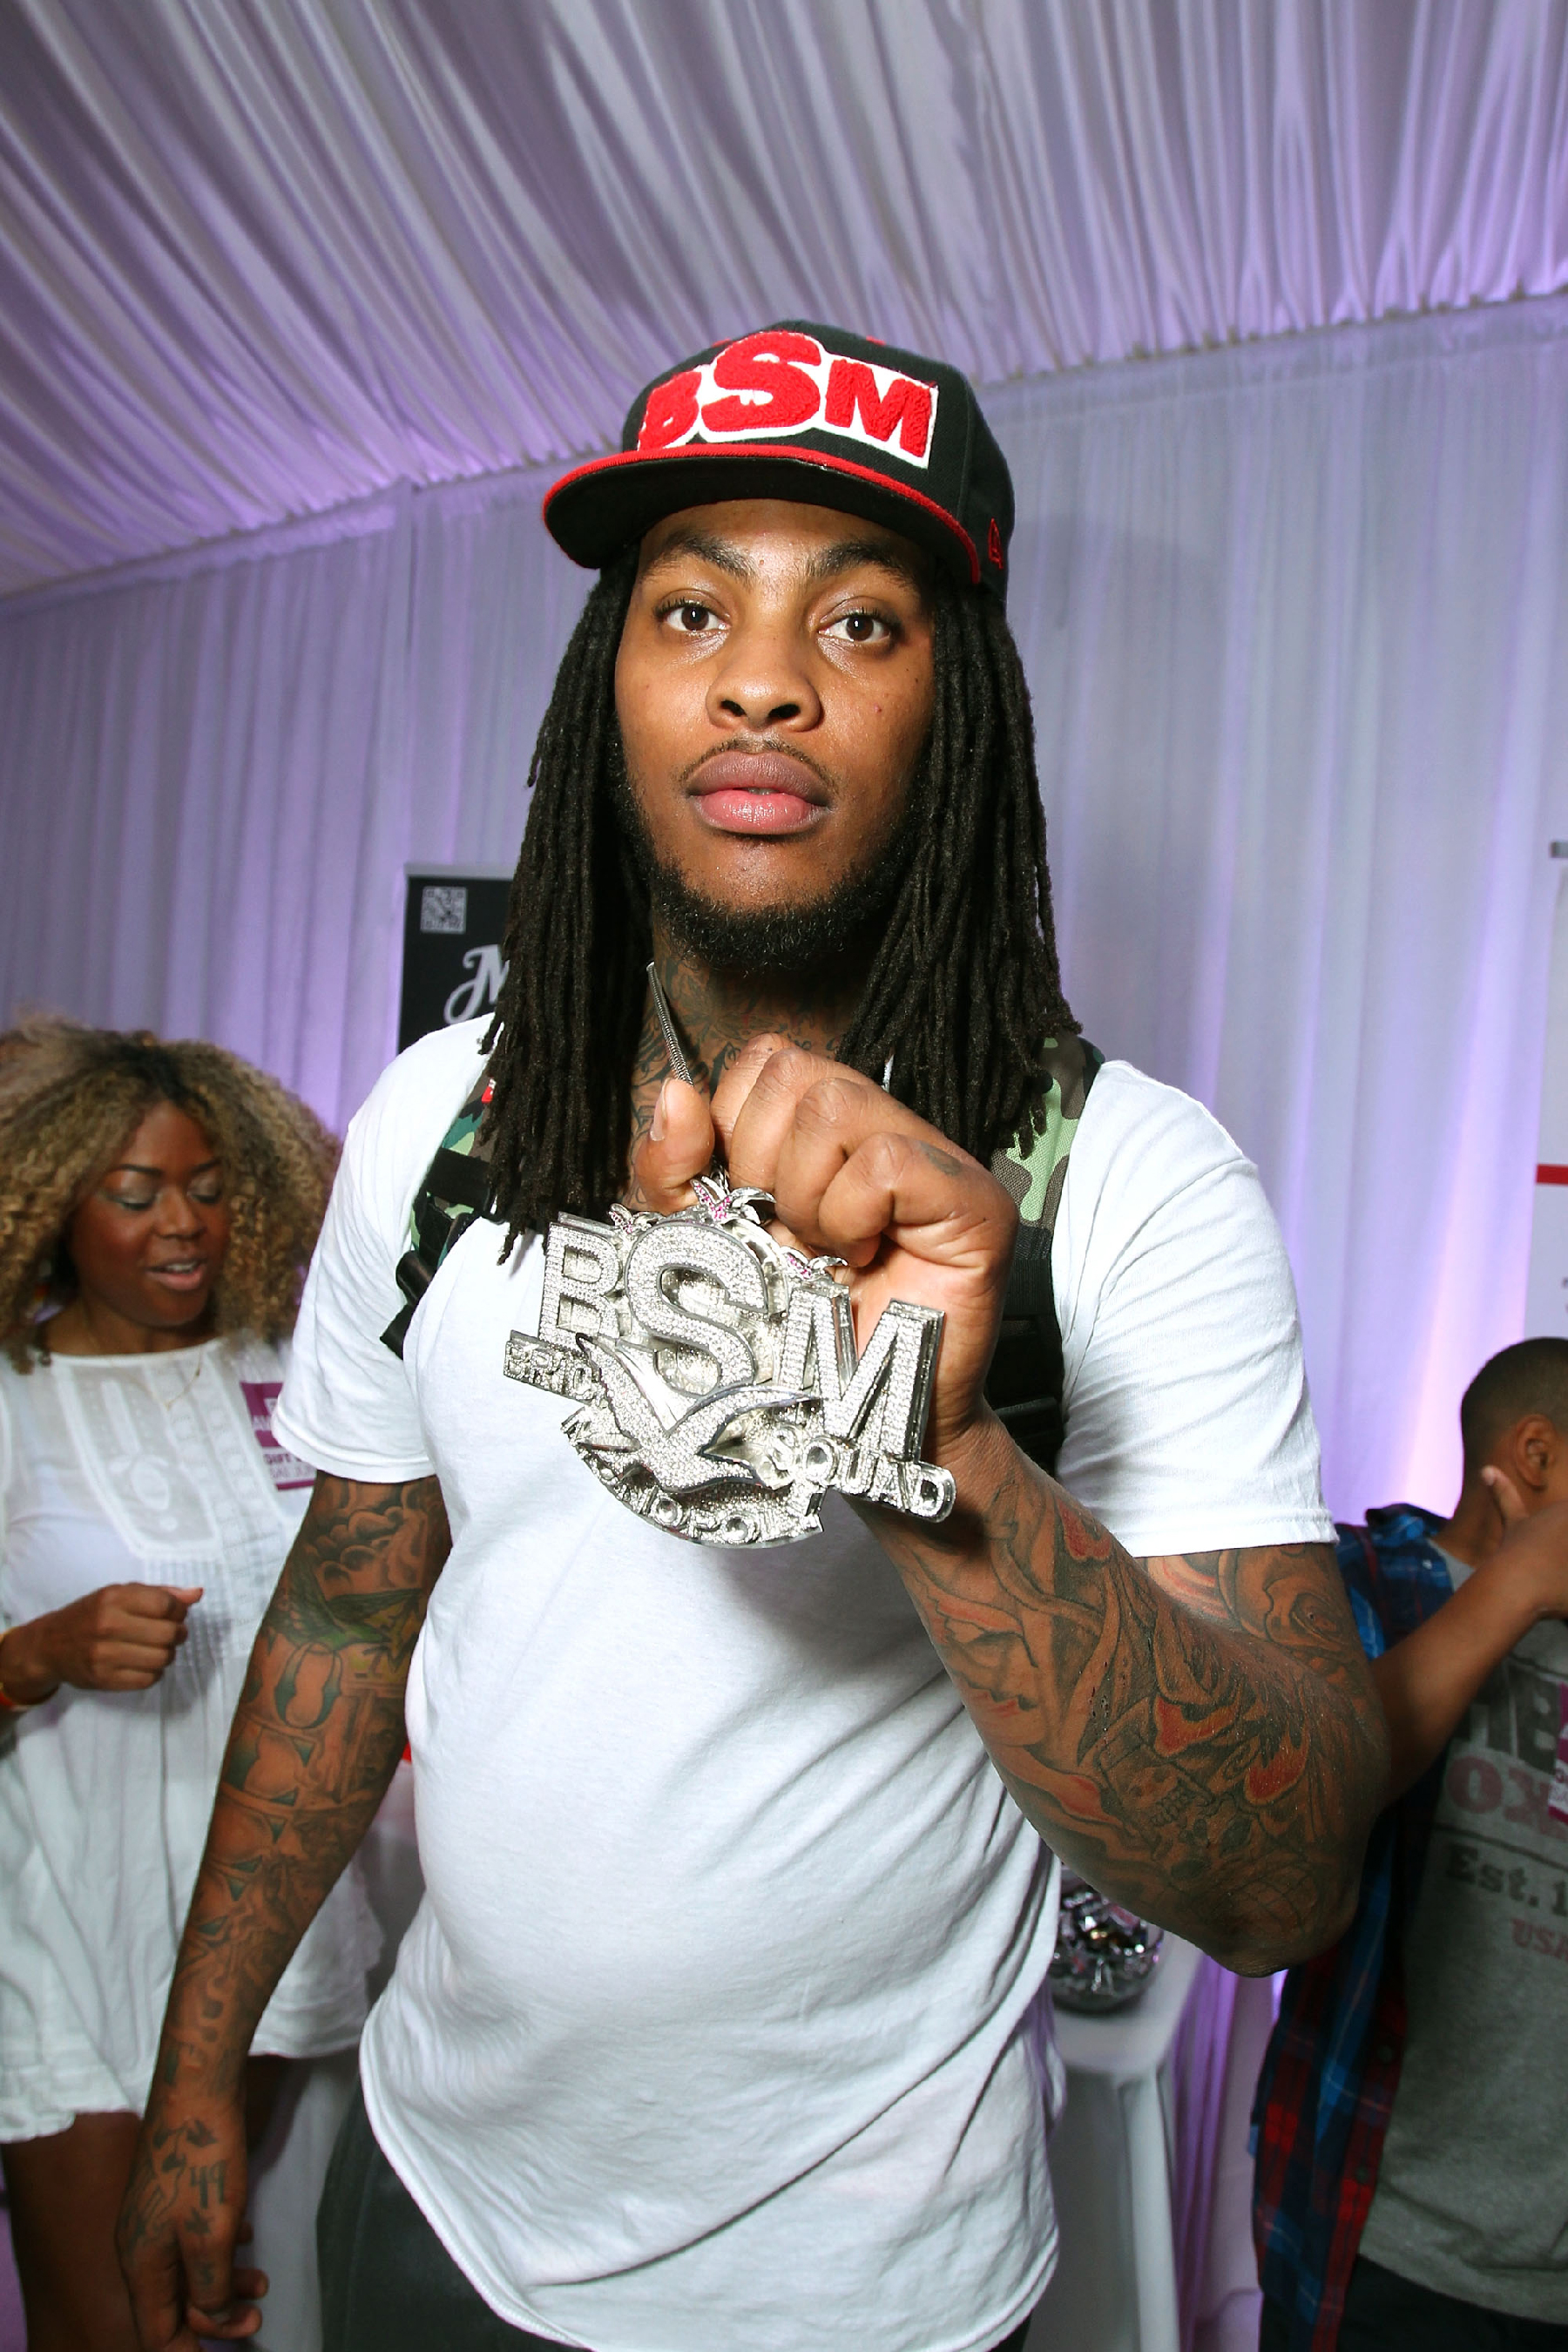 Rapper Kayo Redd, Waka Flocka Flame's Younger Brother, Dead